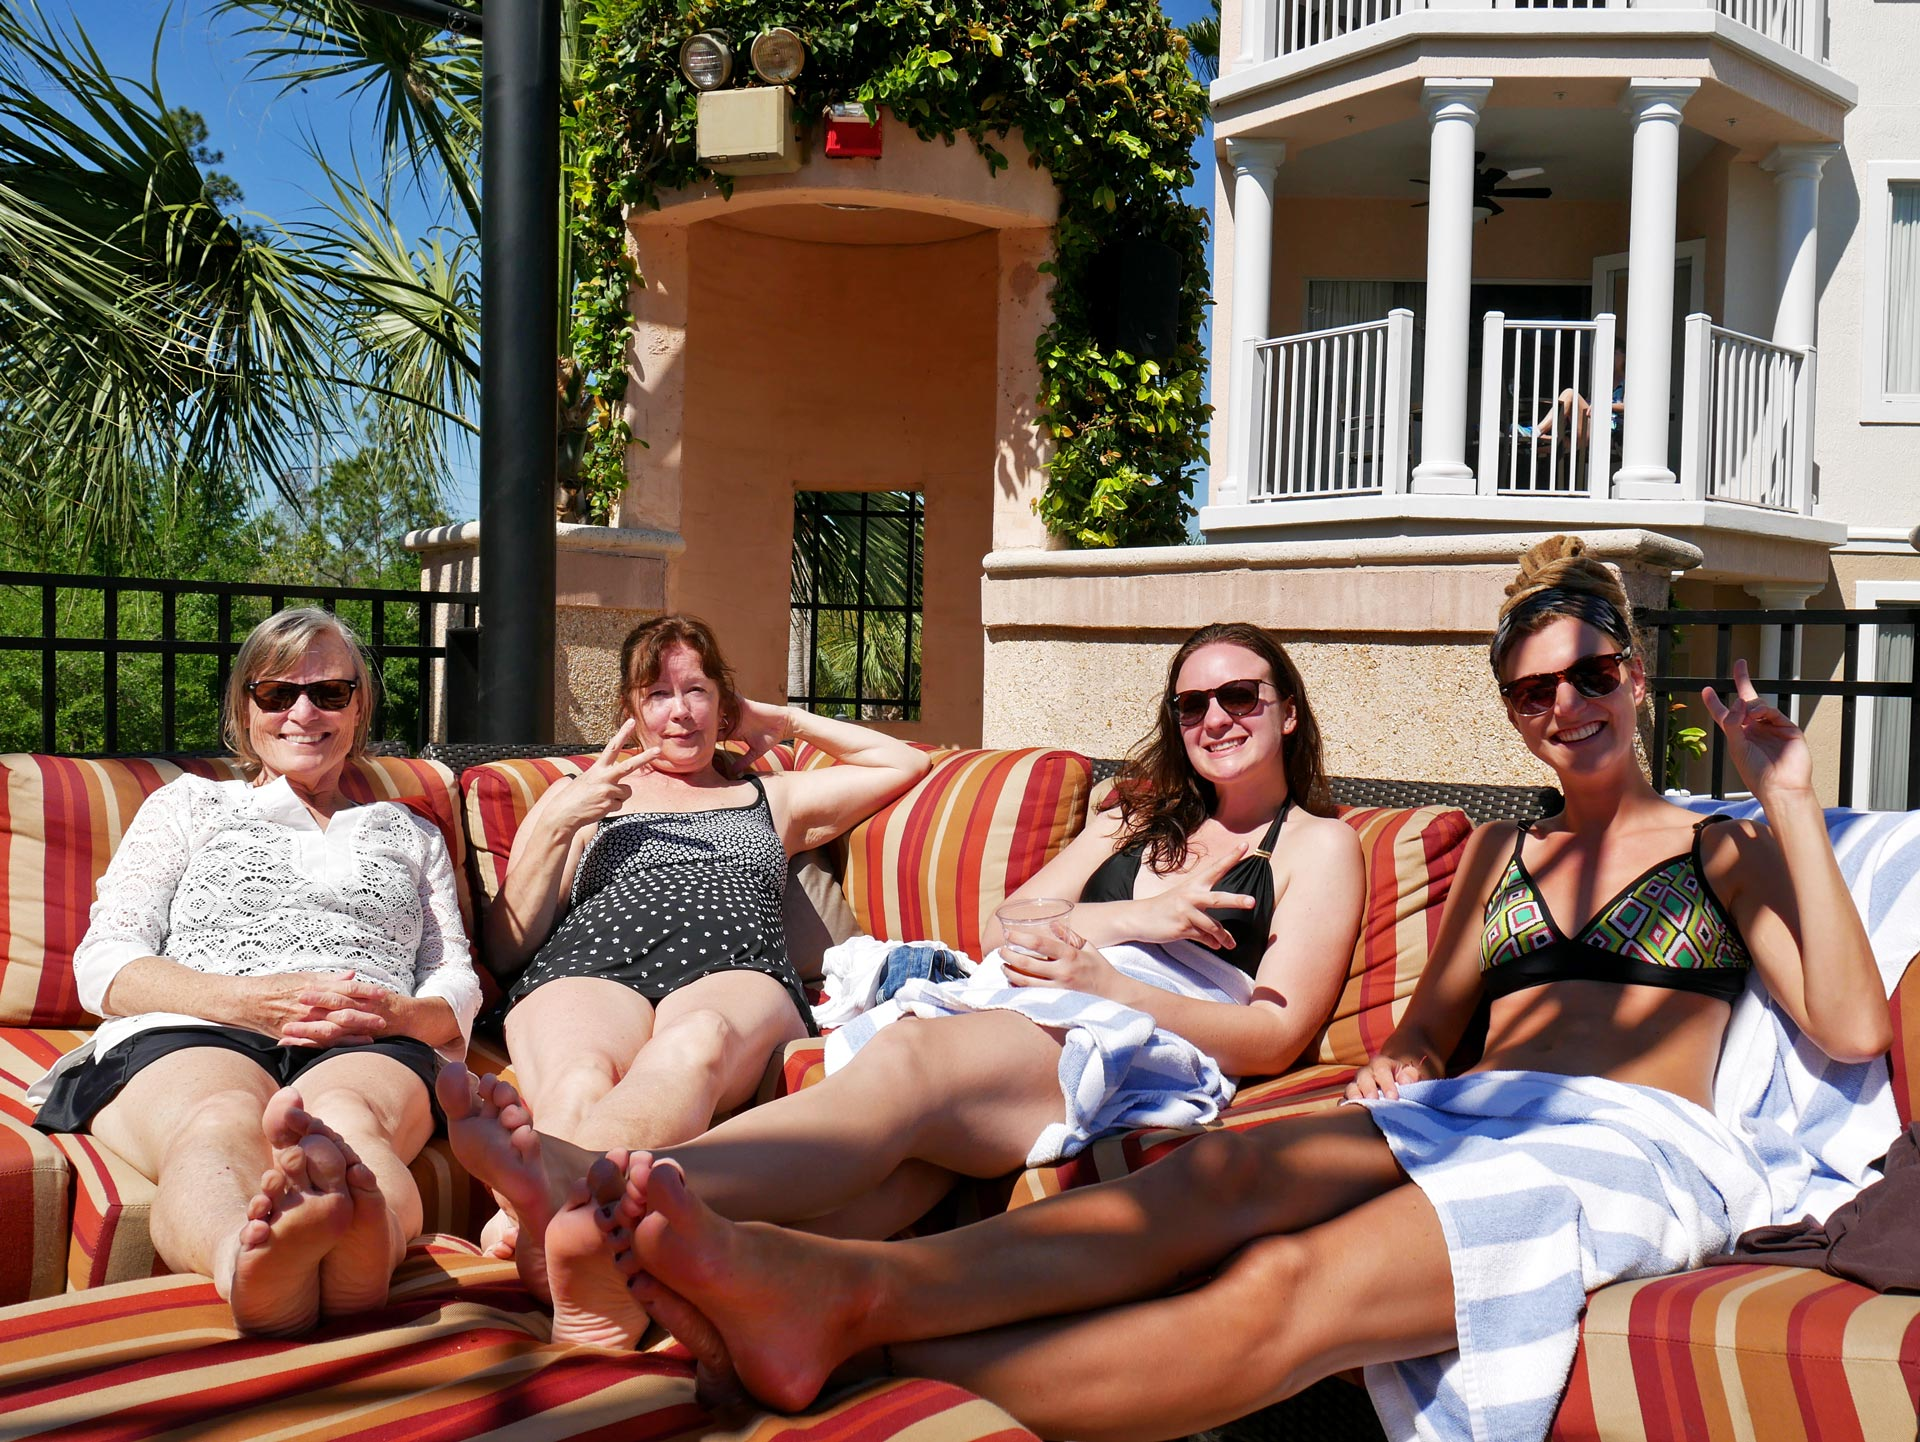 Rasta girl and family lounging at hotel in Orlando, Florida